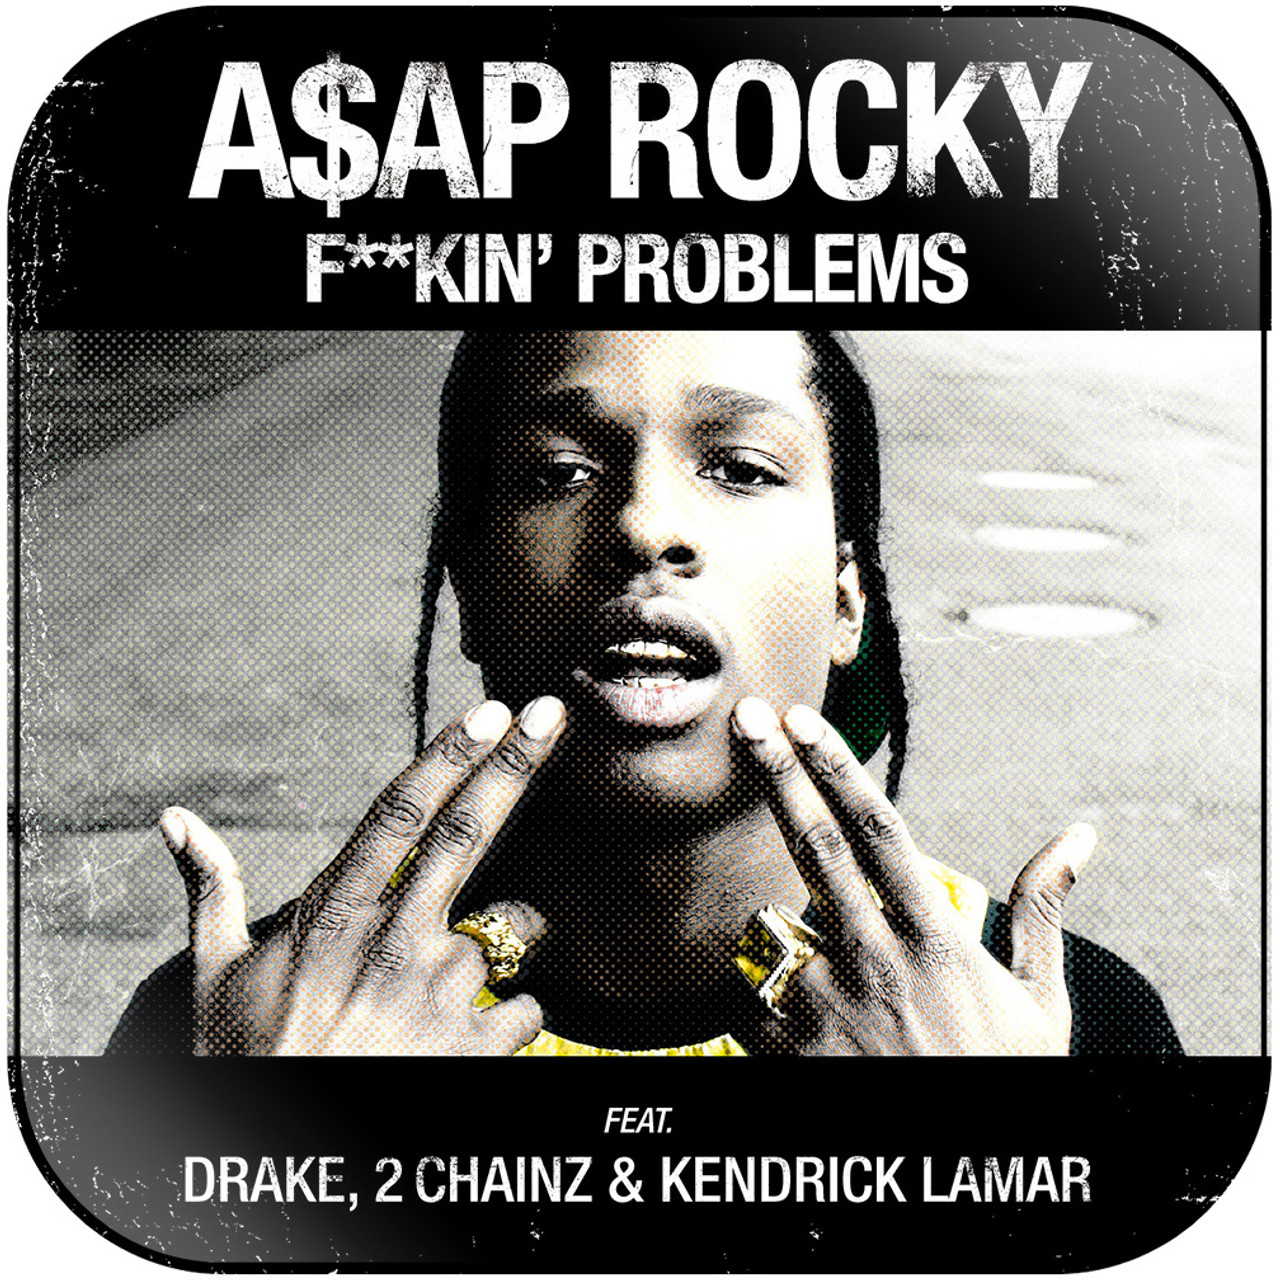 Asap rocky full album